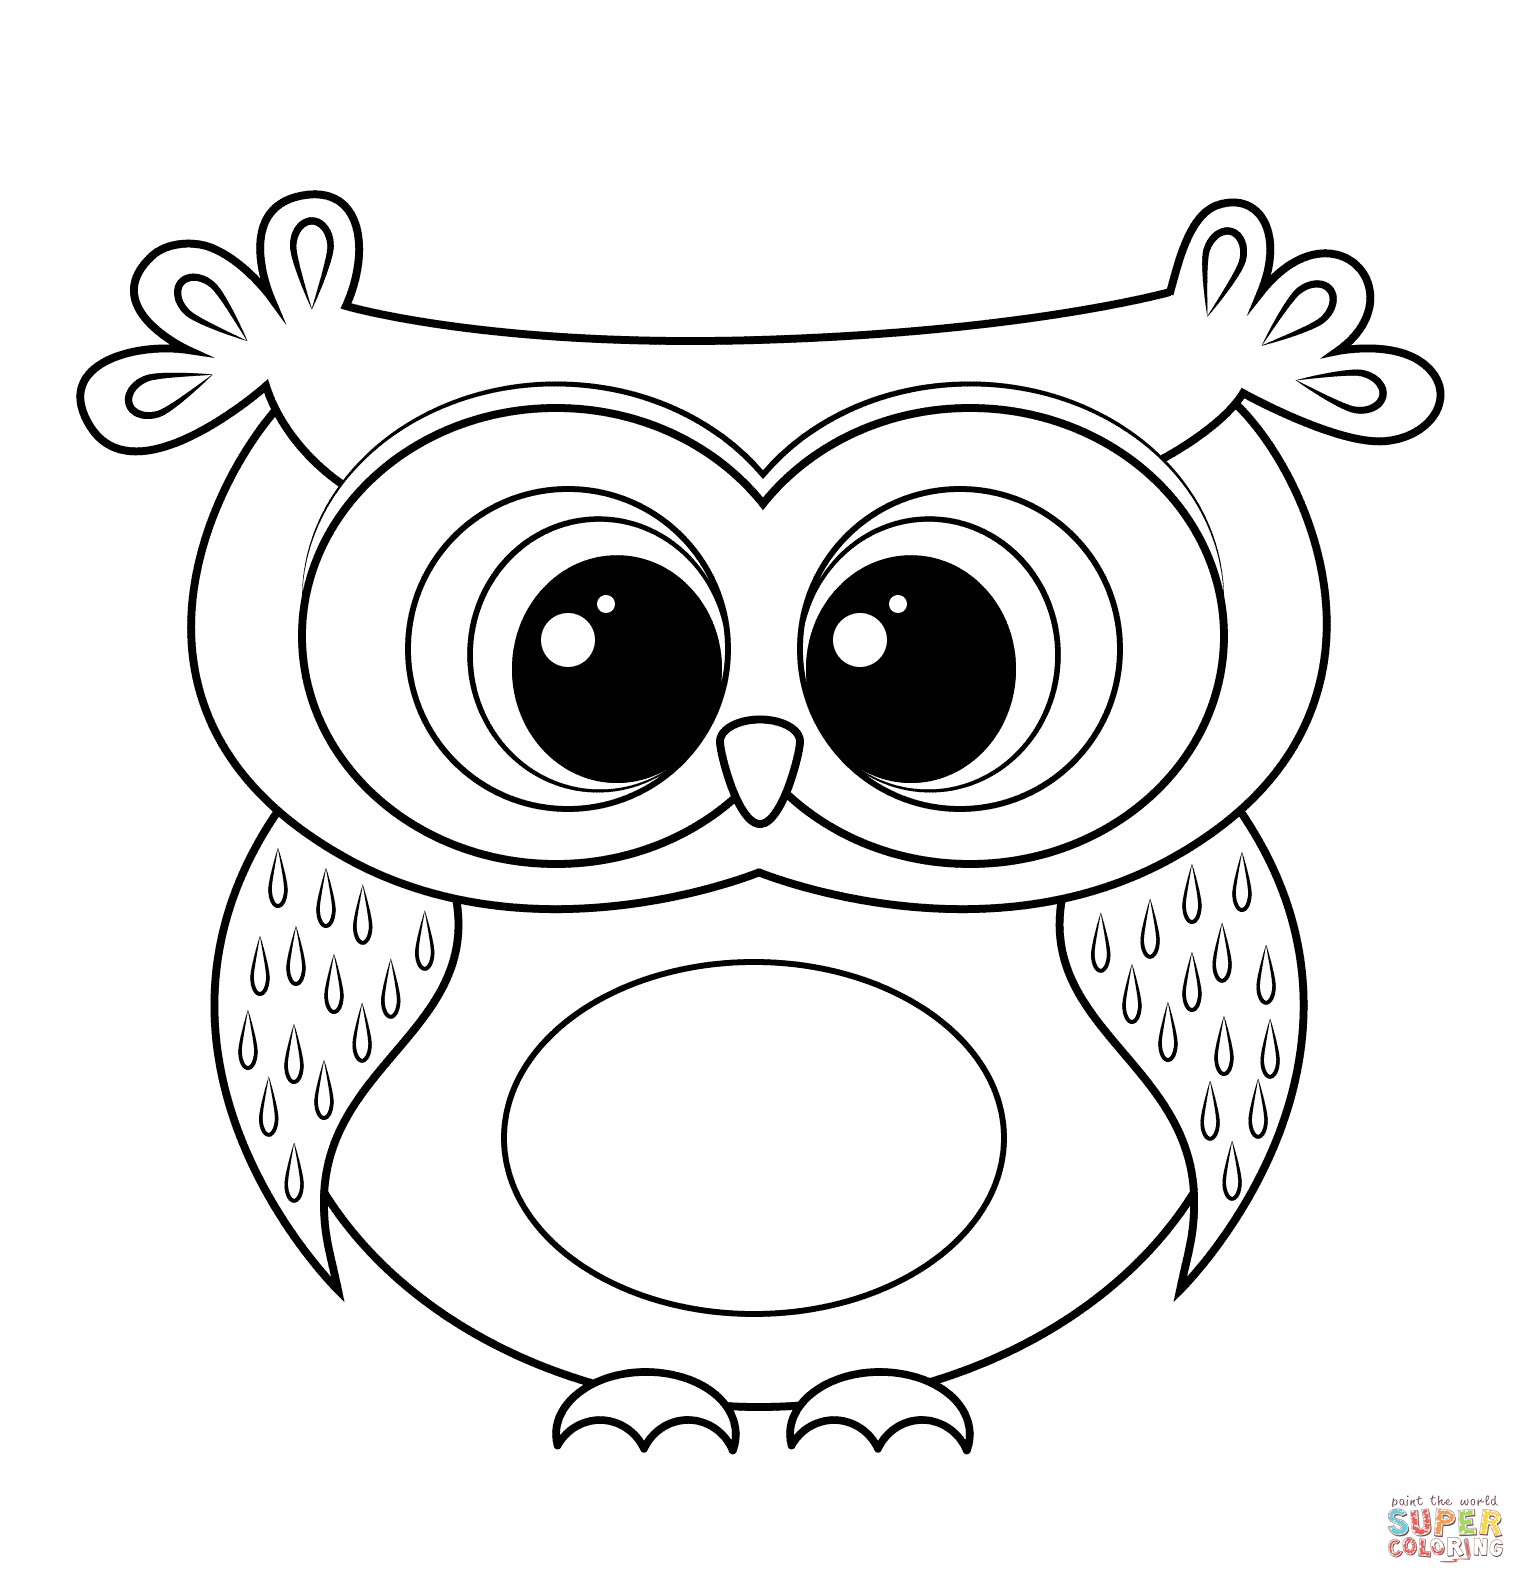 Owl coloring #15, Download drawings